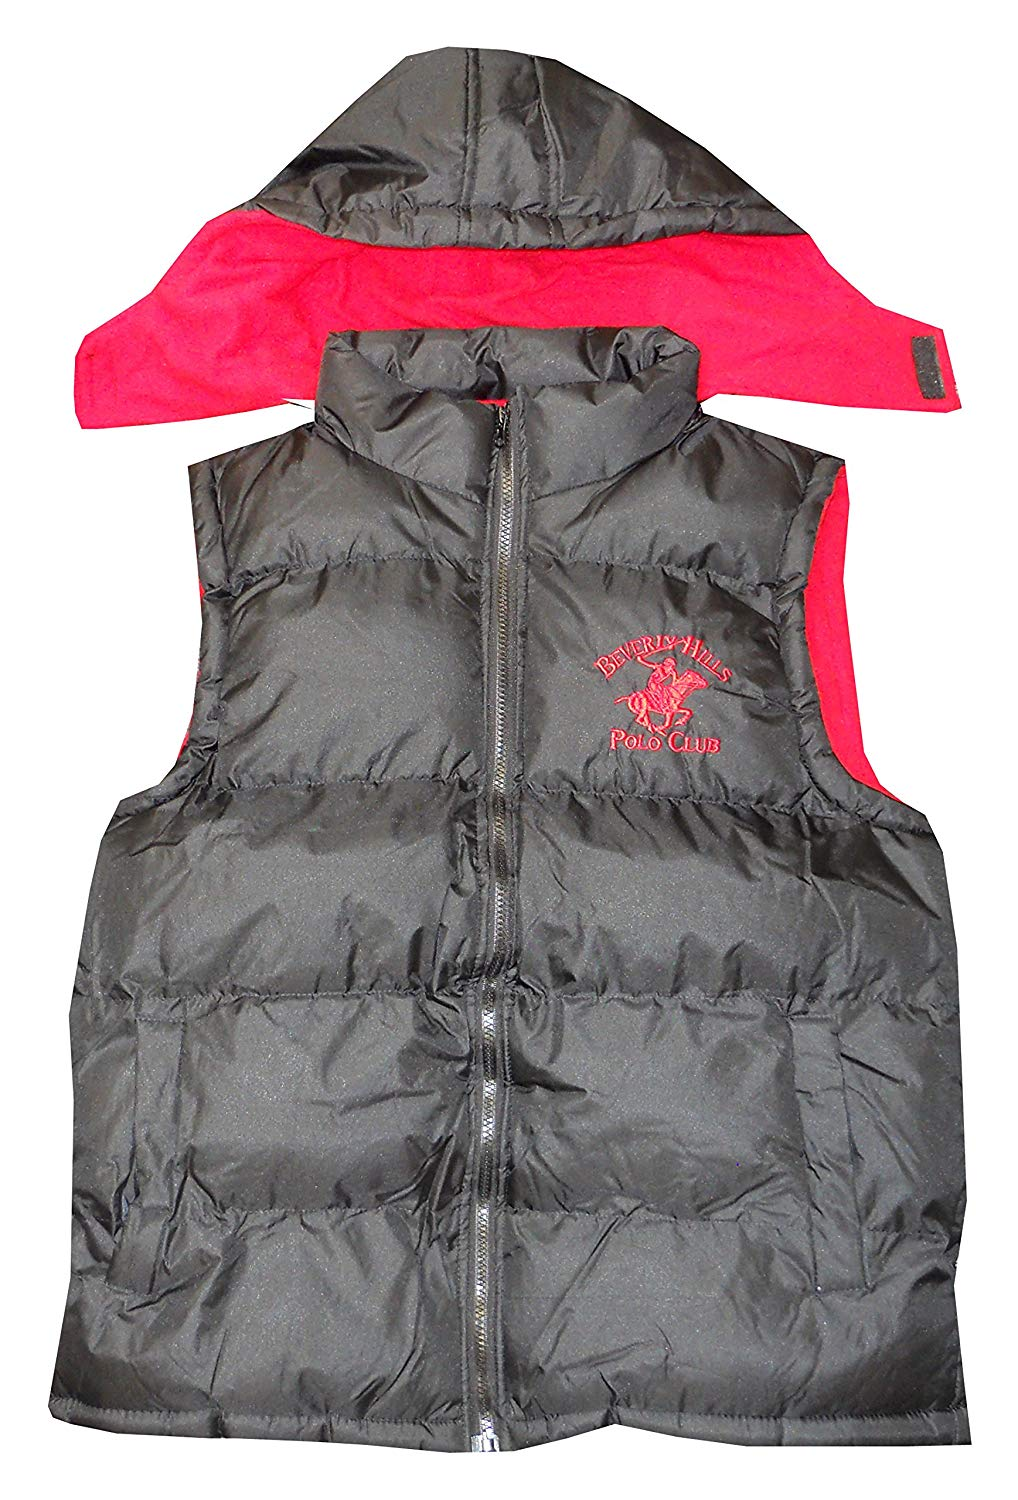 b1e24f337 Get Quotations · Beverly Hills Polo Club Men's Black & Red Vest With  Detachable Hoodie